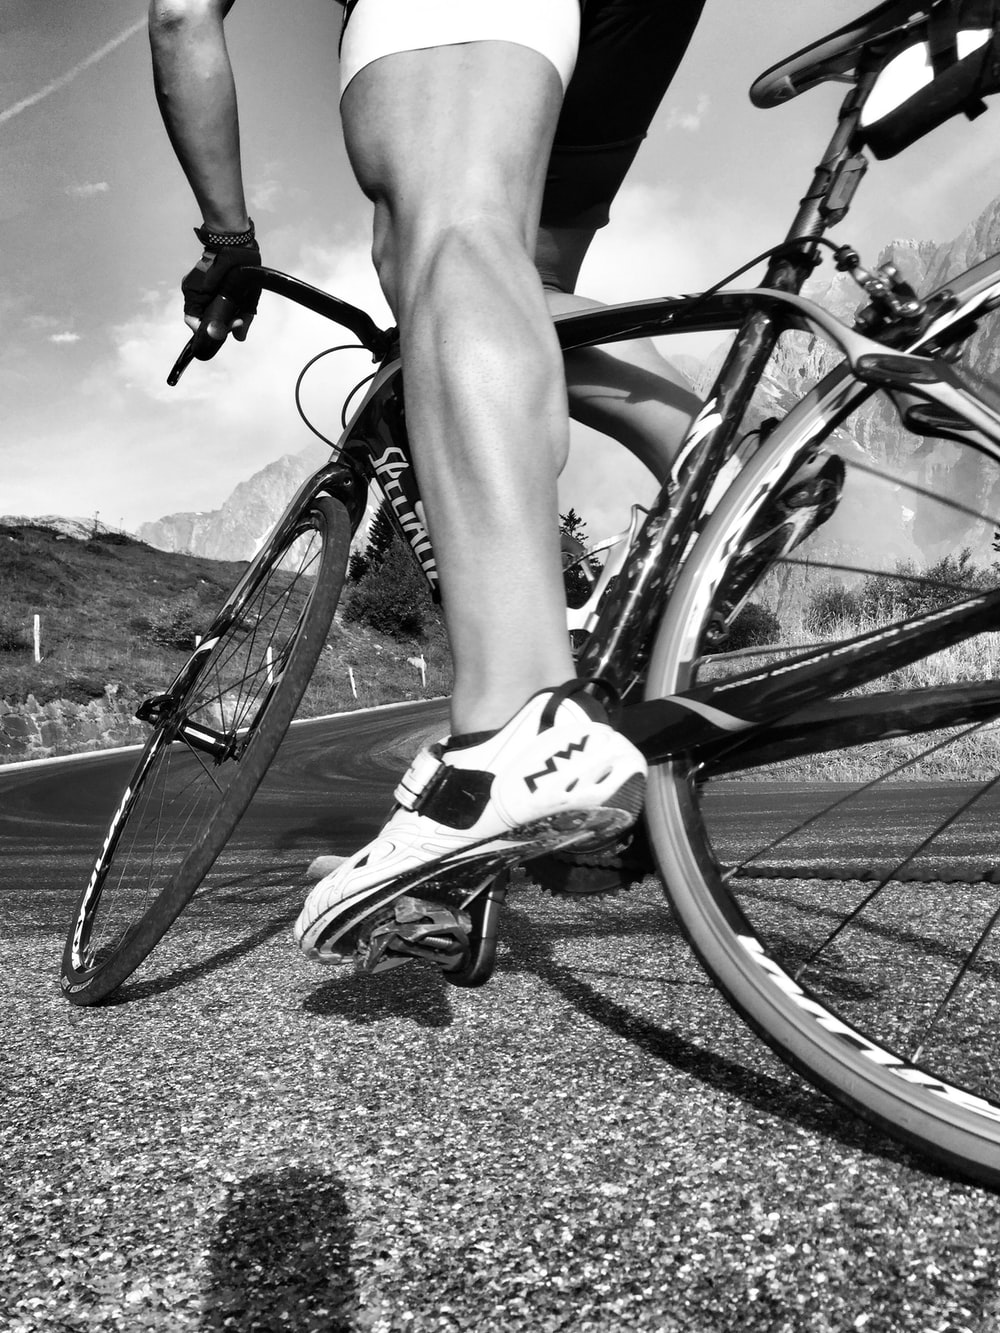 grayscale photo of person riding on bicycle